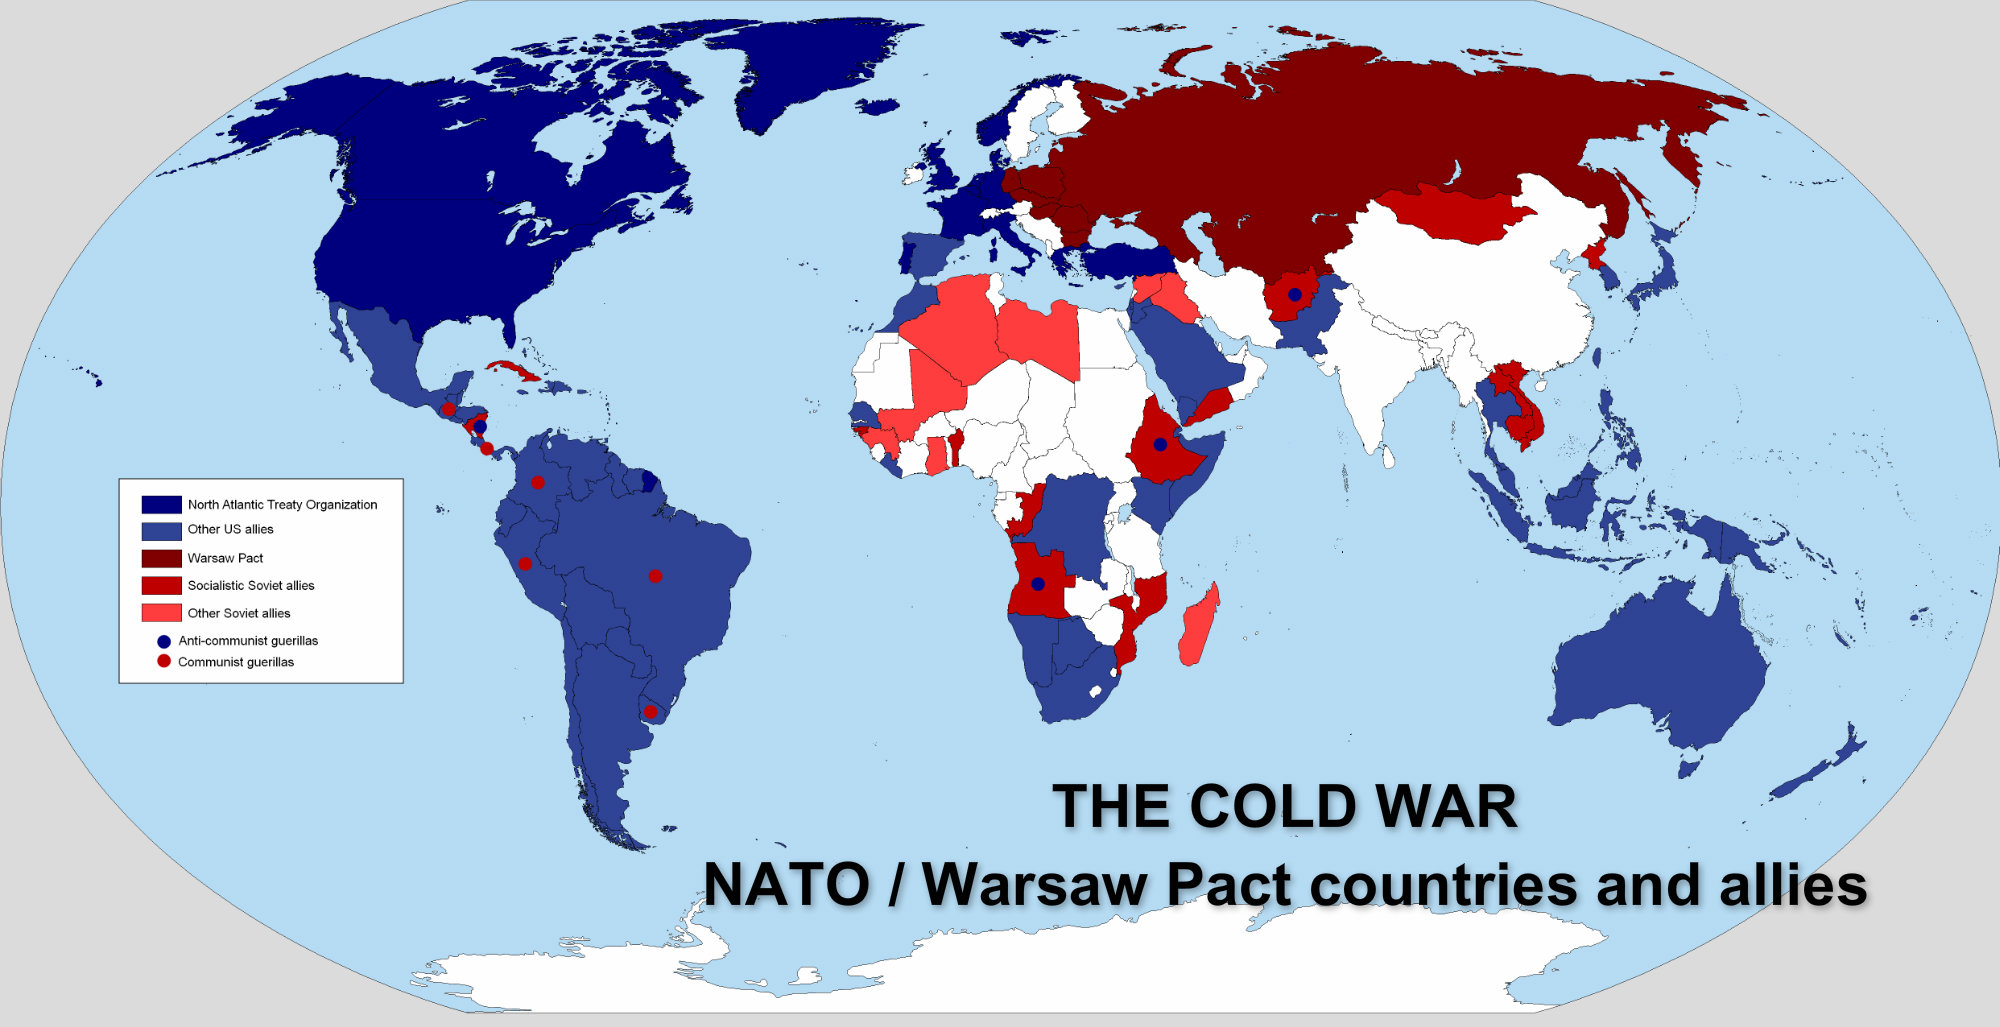 a history of the development of technology during the cold war The cold war, globalization and this was accruing during the start of the cold war before korea when things changed the cold war an international history new.